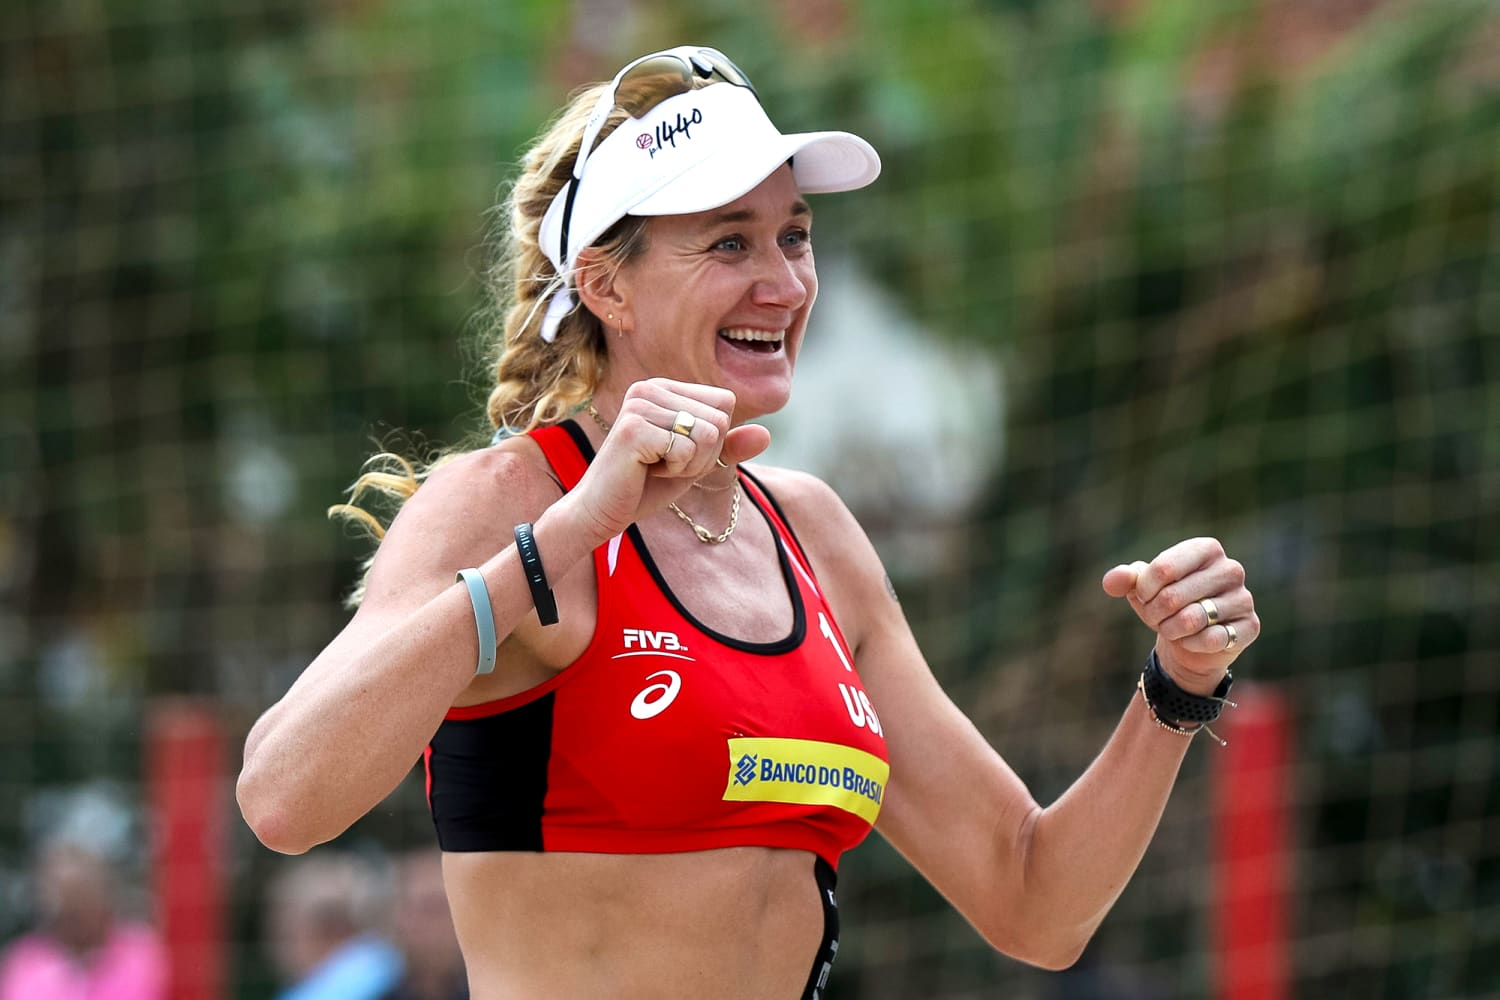 Olympic Beach Volleyball Star Kerri Walsh-Jennings Shares the Snack She Always Keeps Courtside